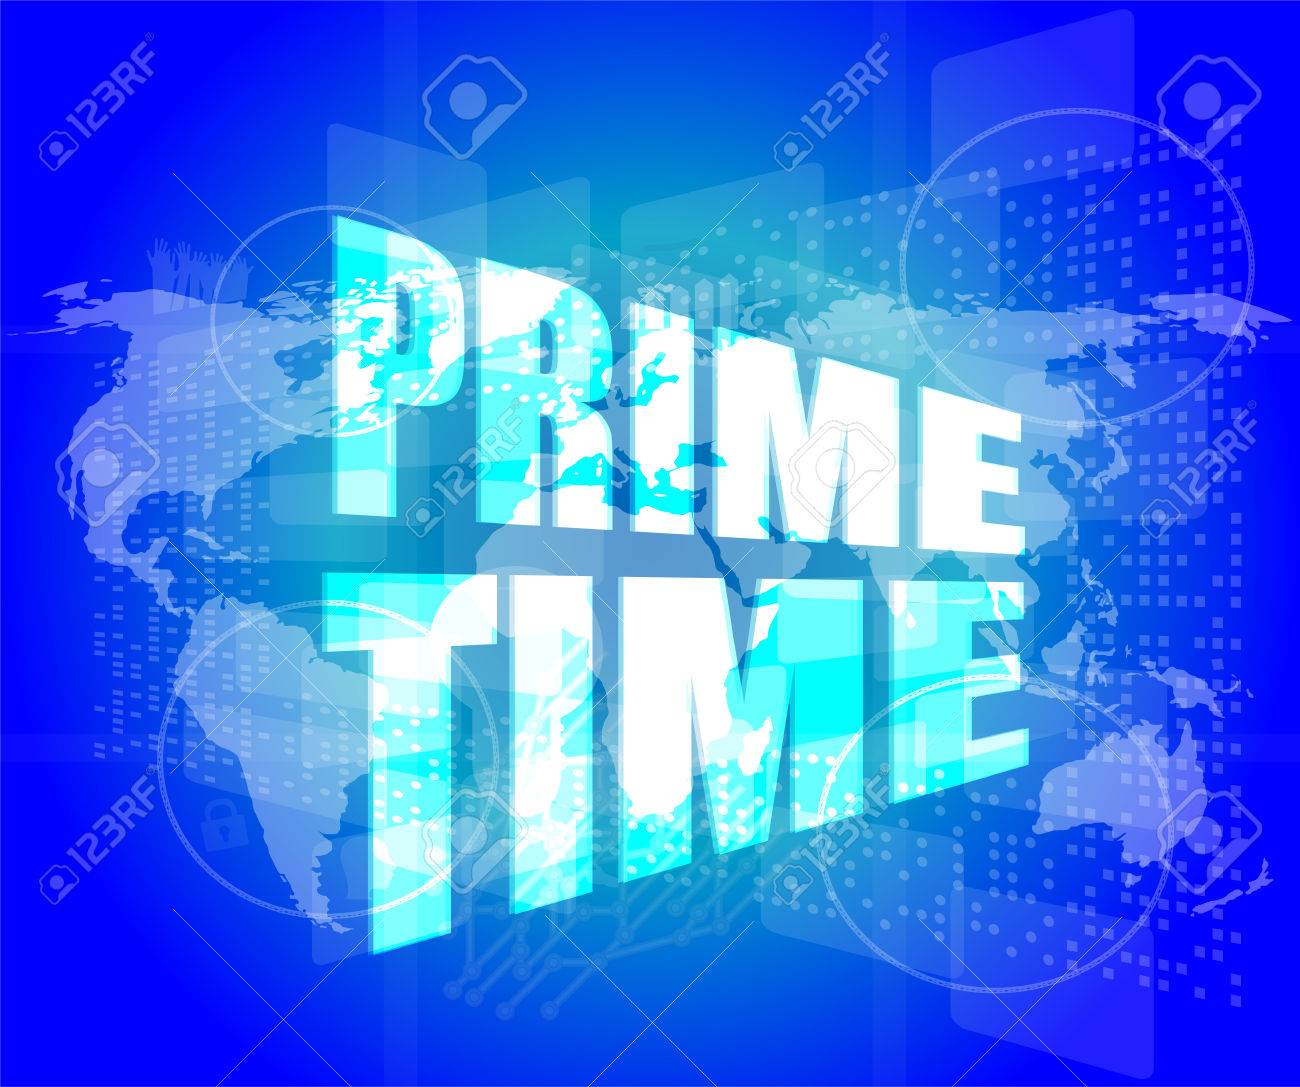 Prime time words on digital screen background with world map stock prime time words on digital screen background with world map stock photo 33402970 gumiabroncs Images